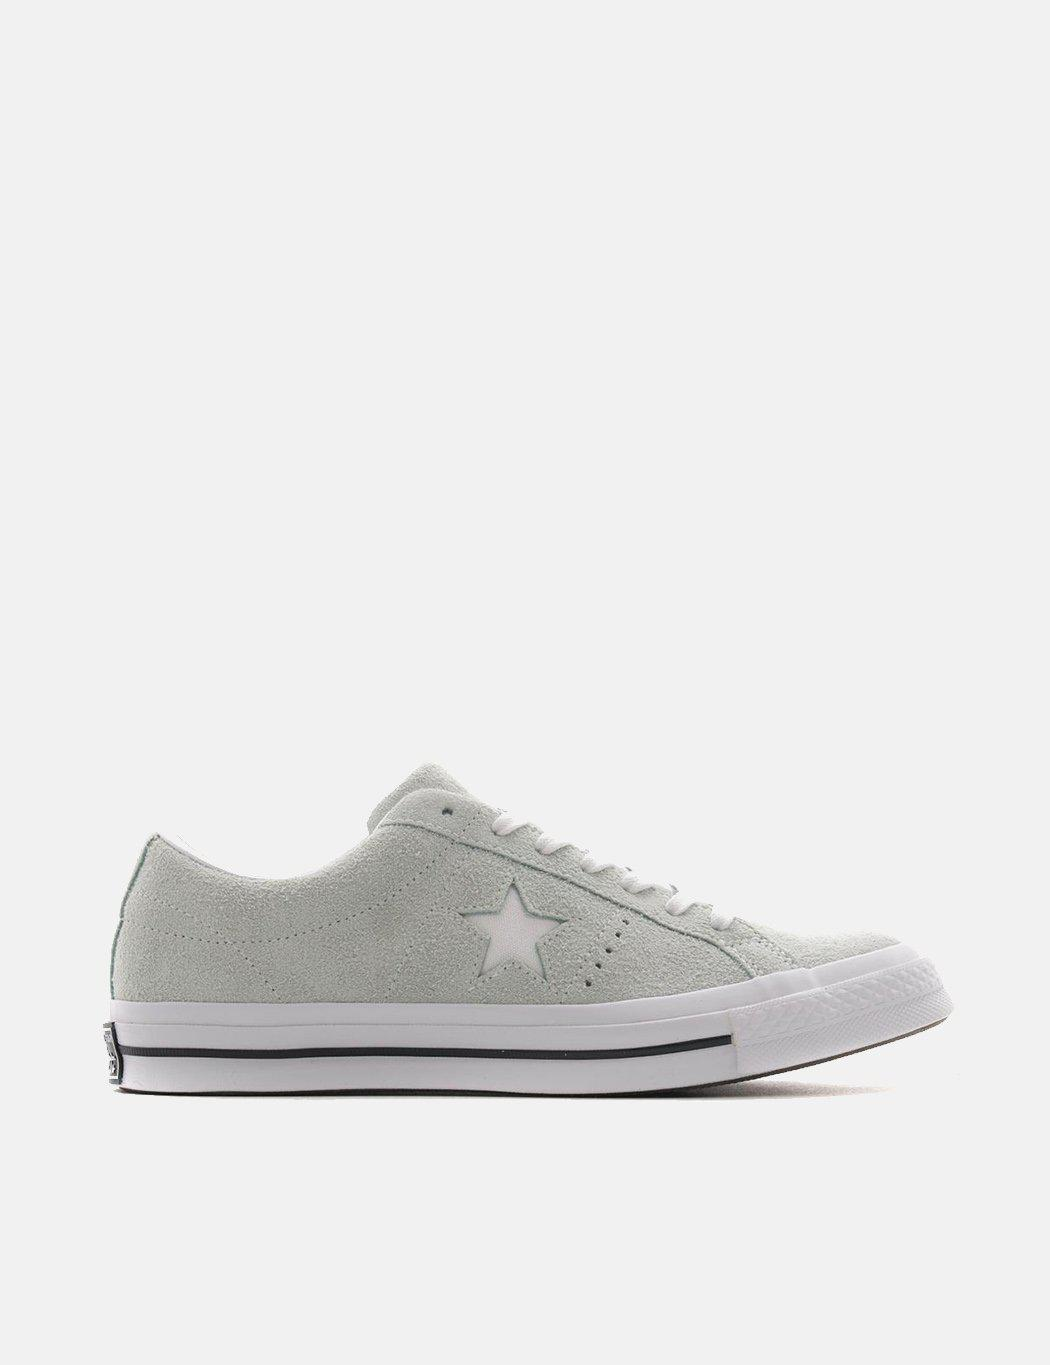 5e79ebad61f3c7 Converse One Star Ox Low Suede (159493c) in Green for Men - Lyst